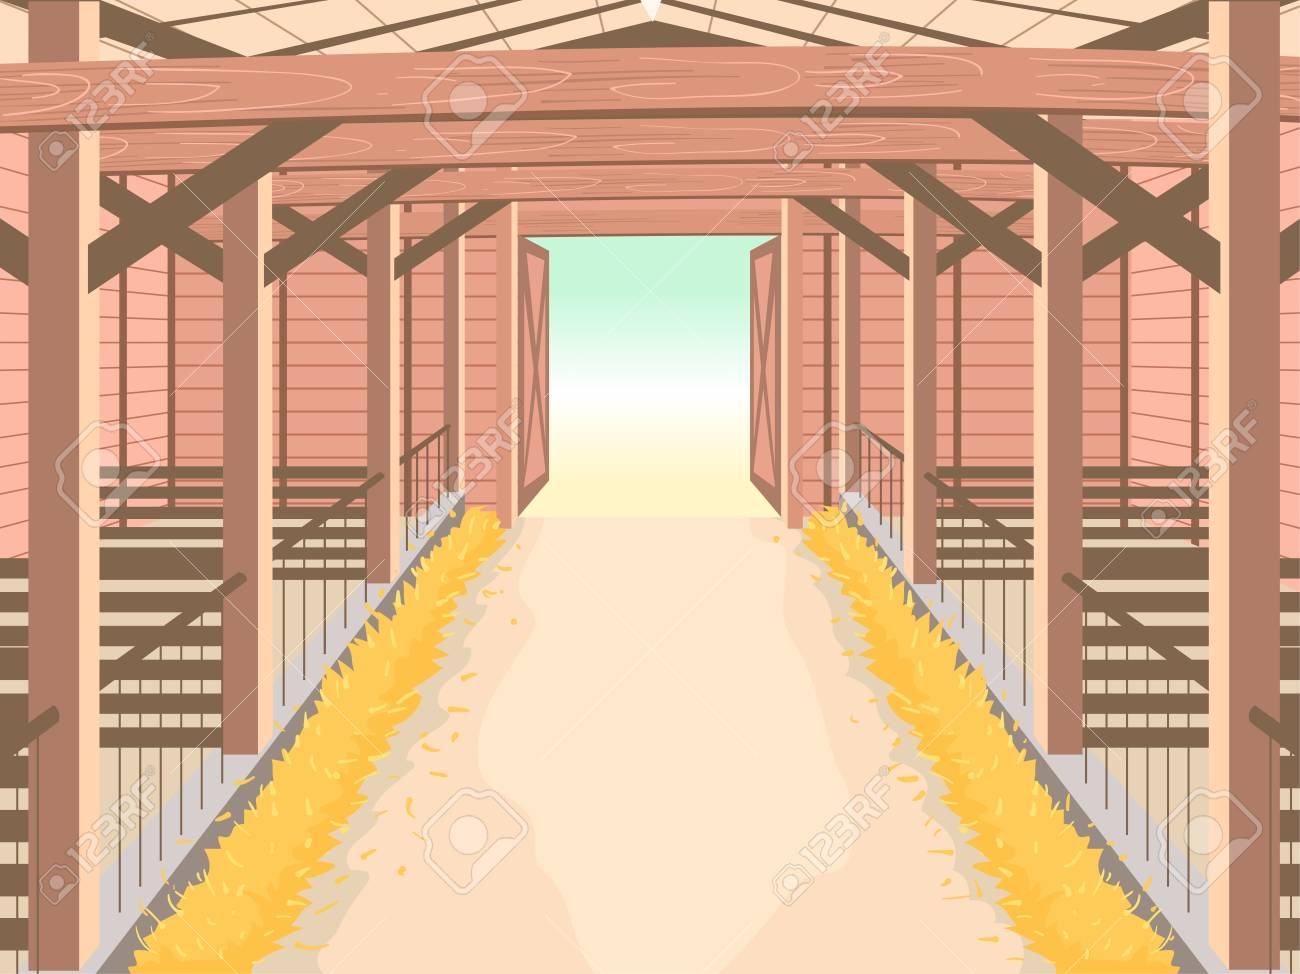 Illustration Of Inside A Barn For Farm Animals Like Cows Or Horses